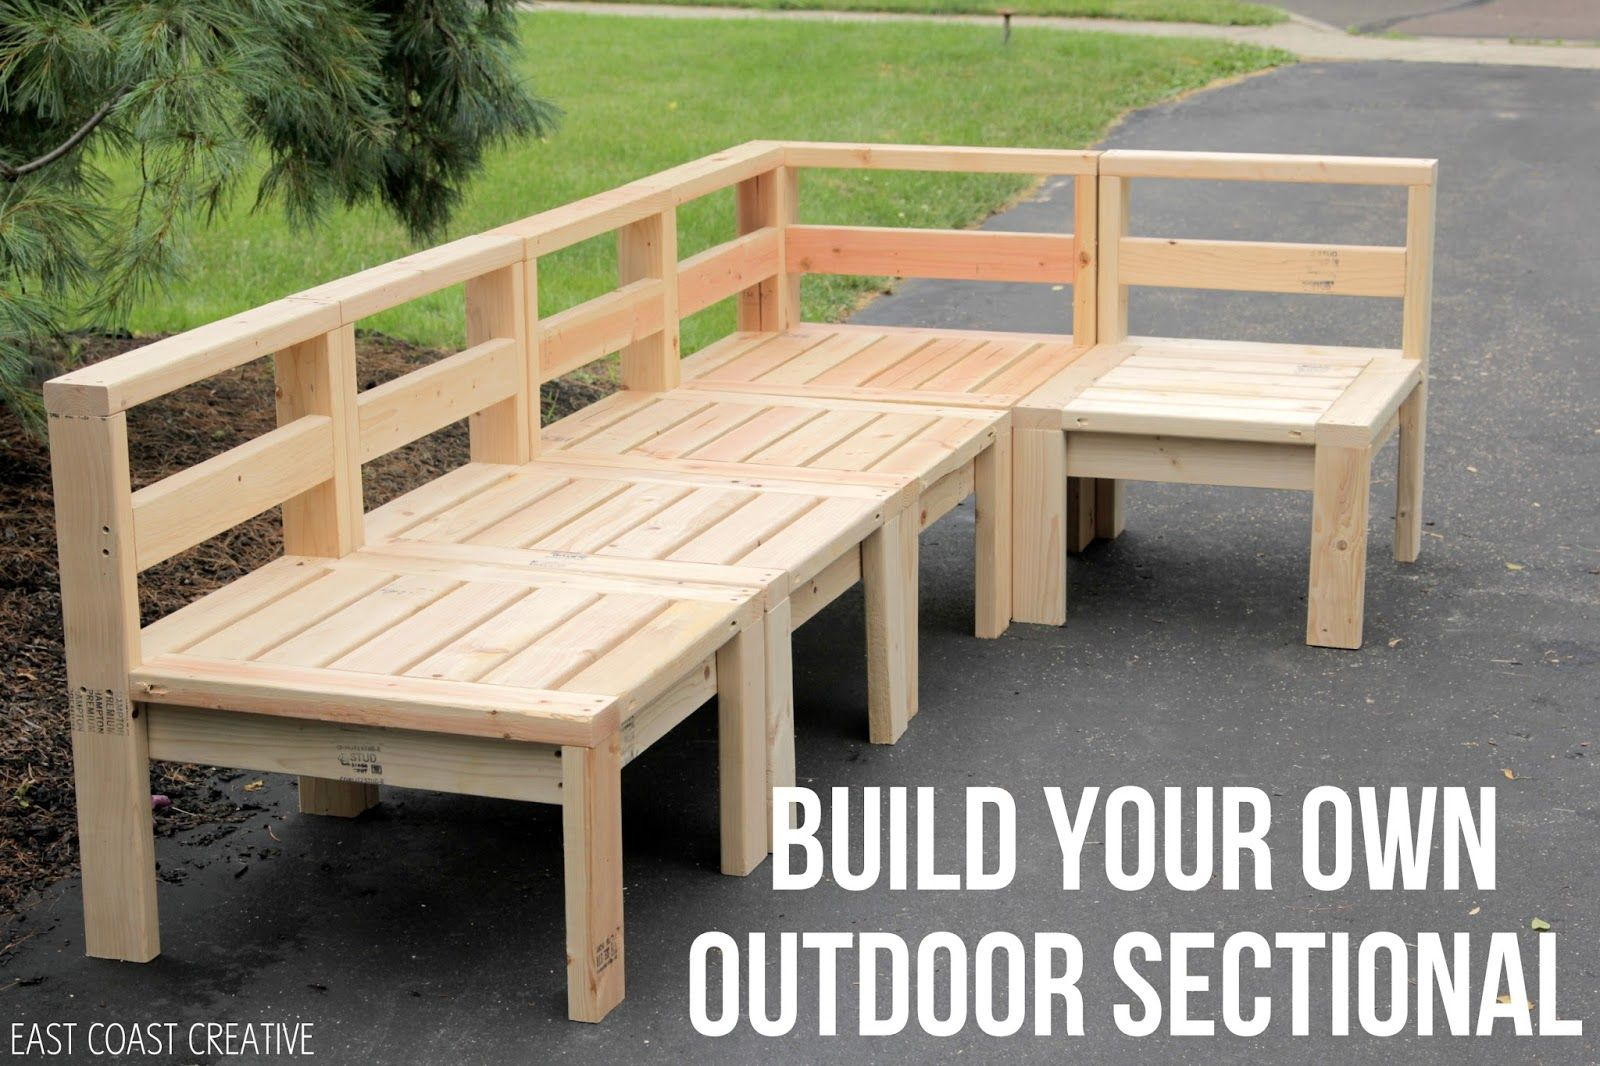 Diy sofa plans build your own couch build your own couch with -  Designs Diy Outdoor Furniture Couch